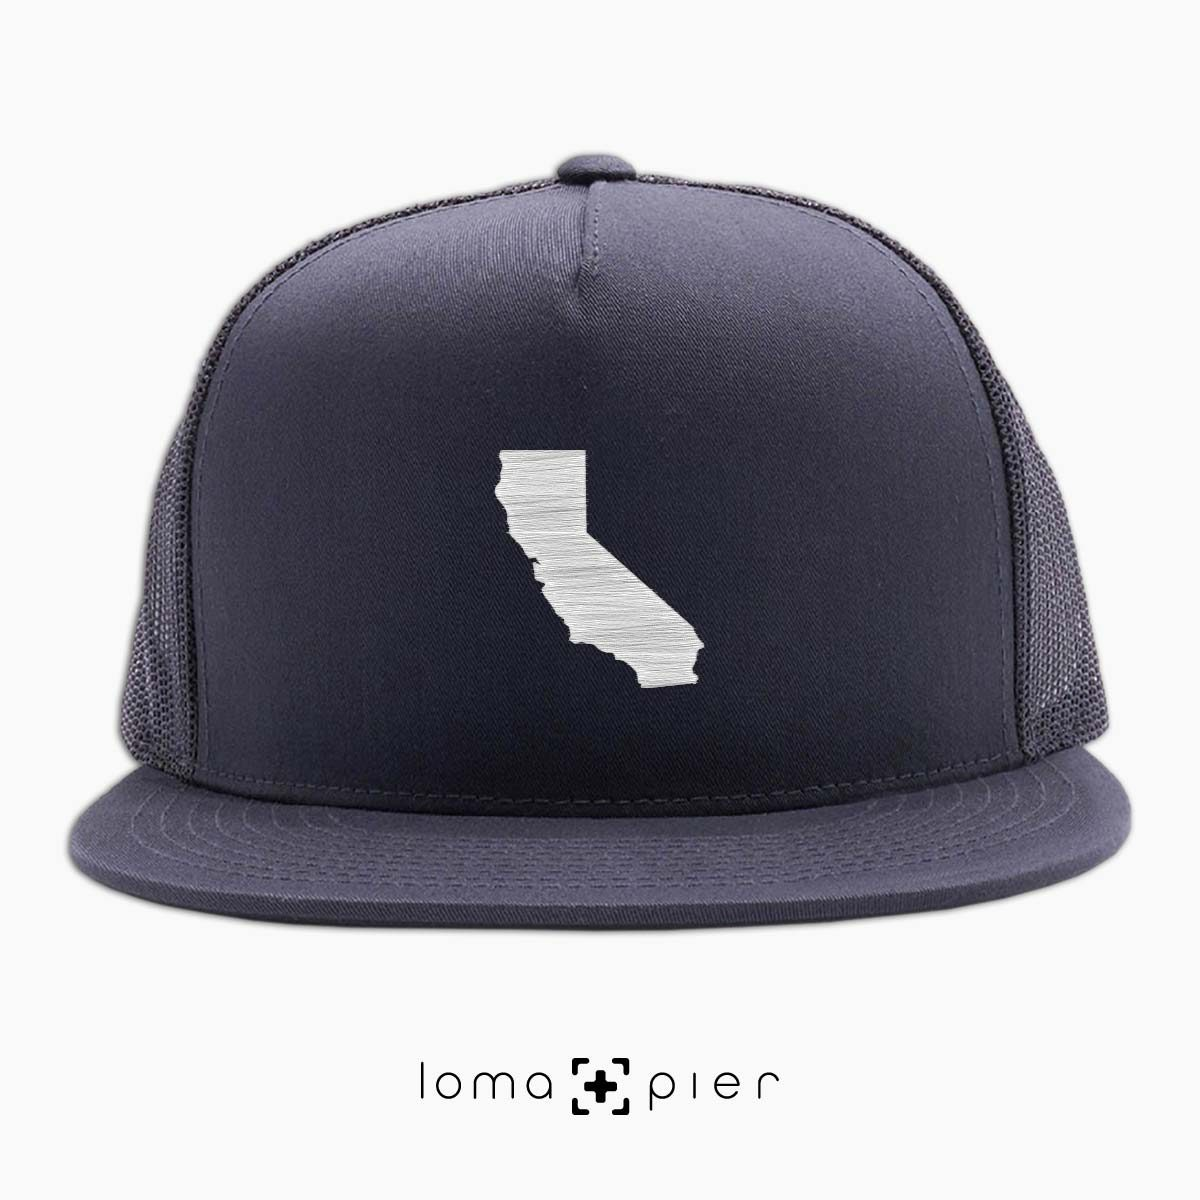 CALIFORNIA icon beach netback trucker hat in charcoal by loma+pier hat store